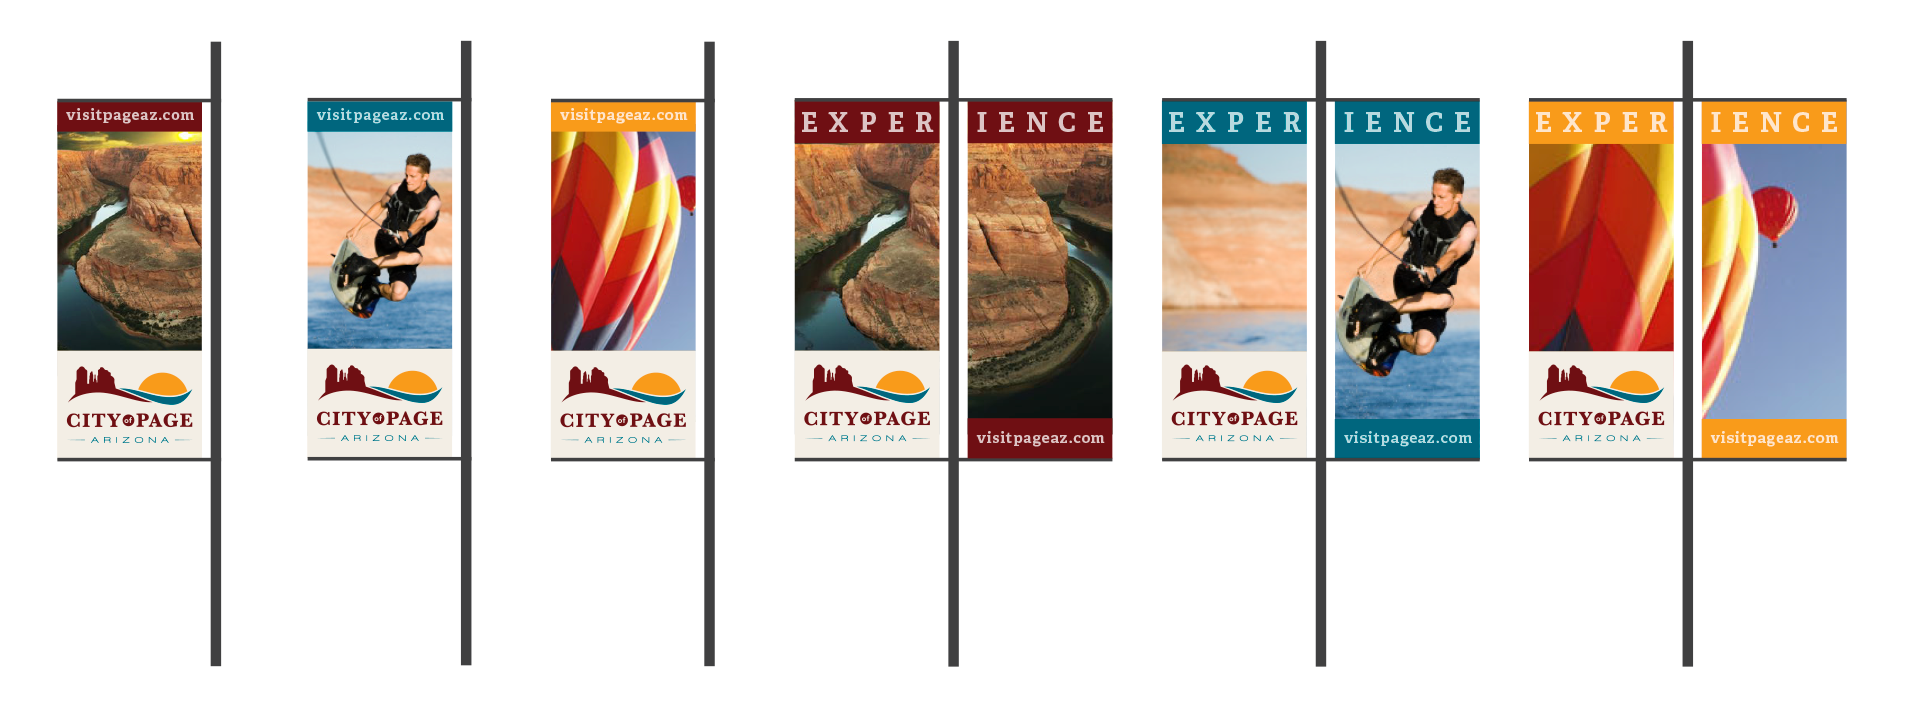 City of Page street sign concepts